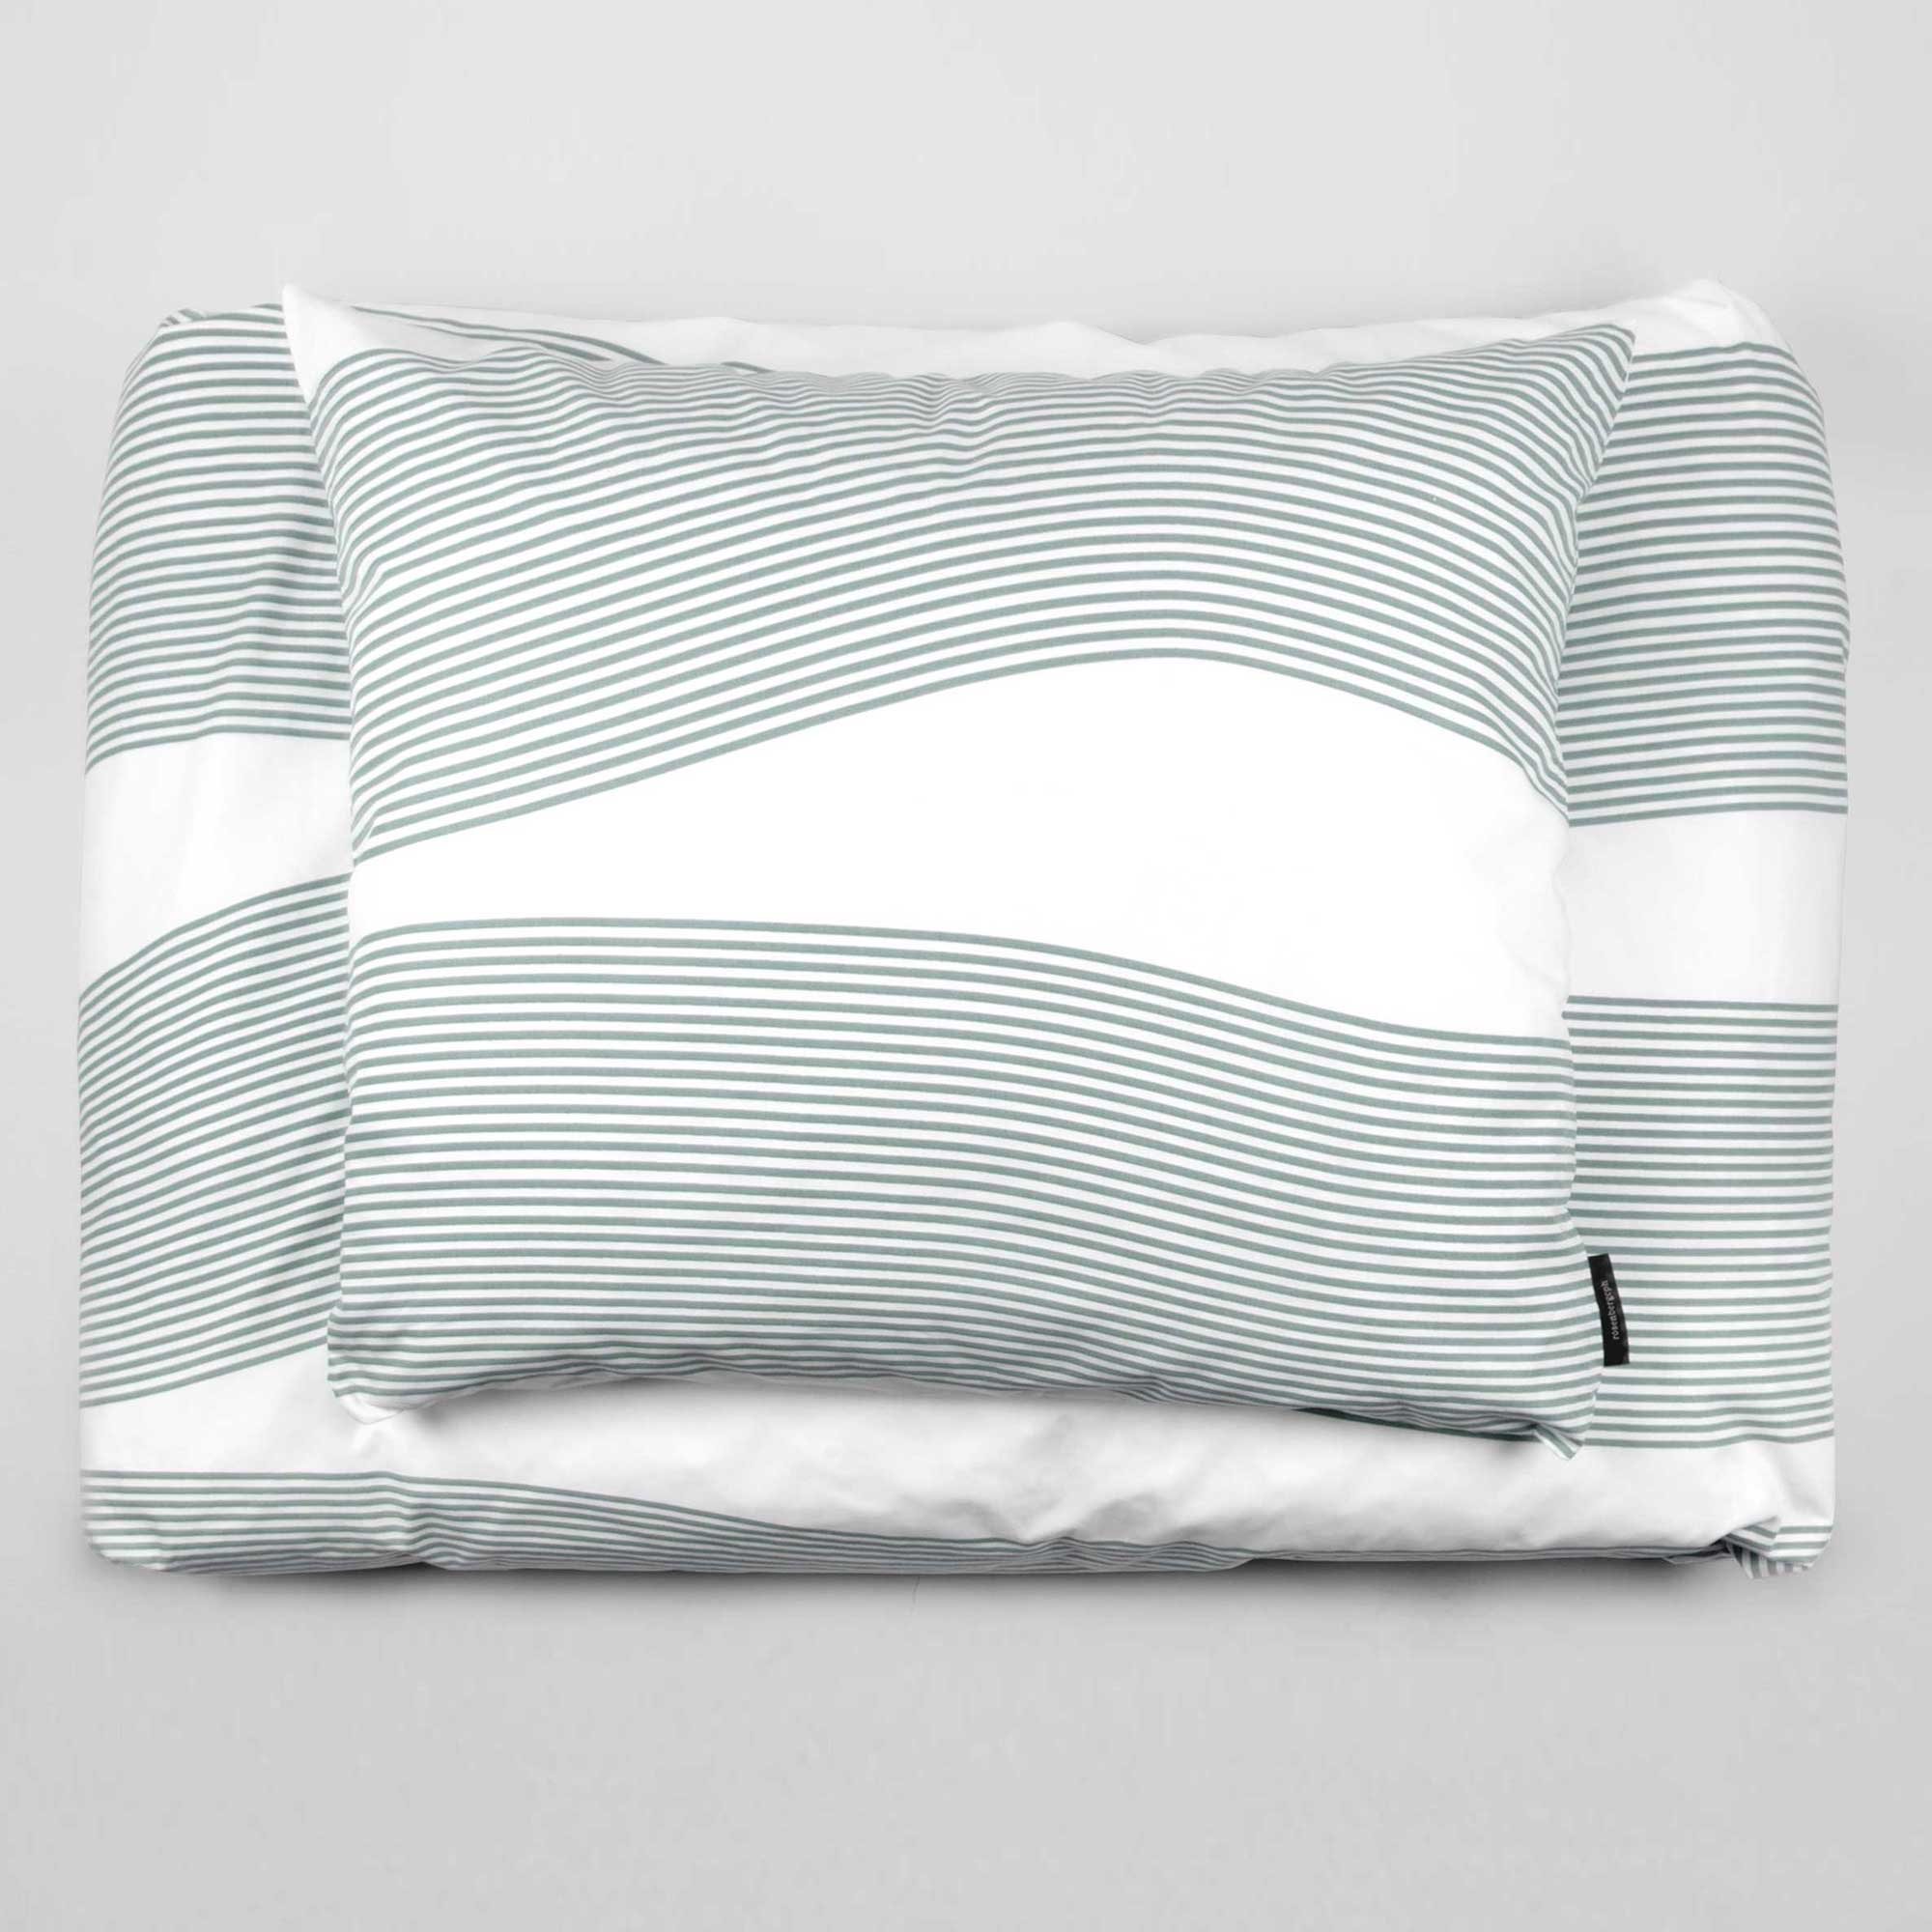 Bed linen, River aqua green, design by Anne Rosenberg, RosenbergCph